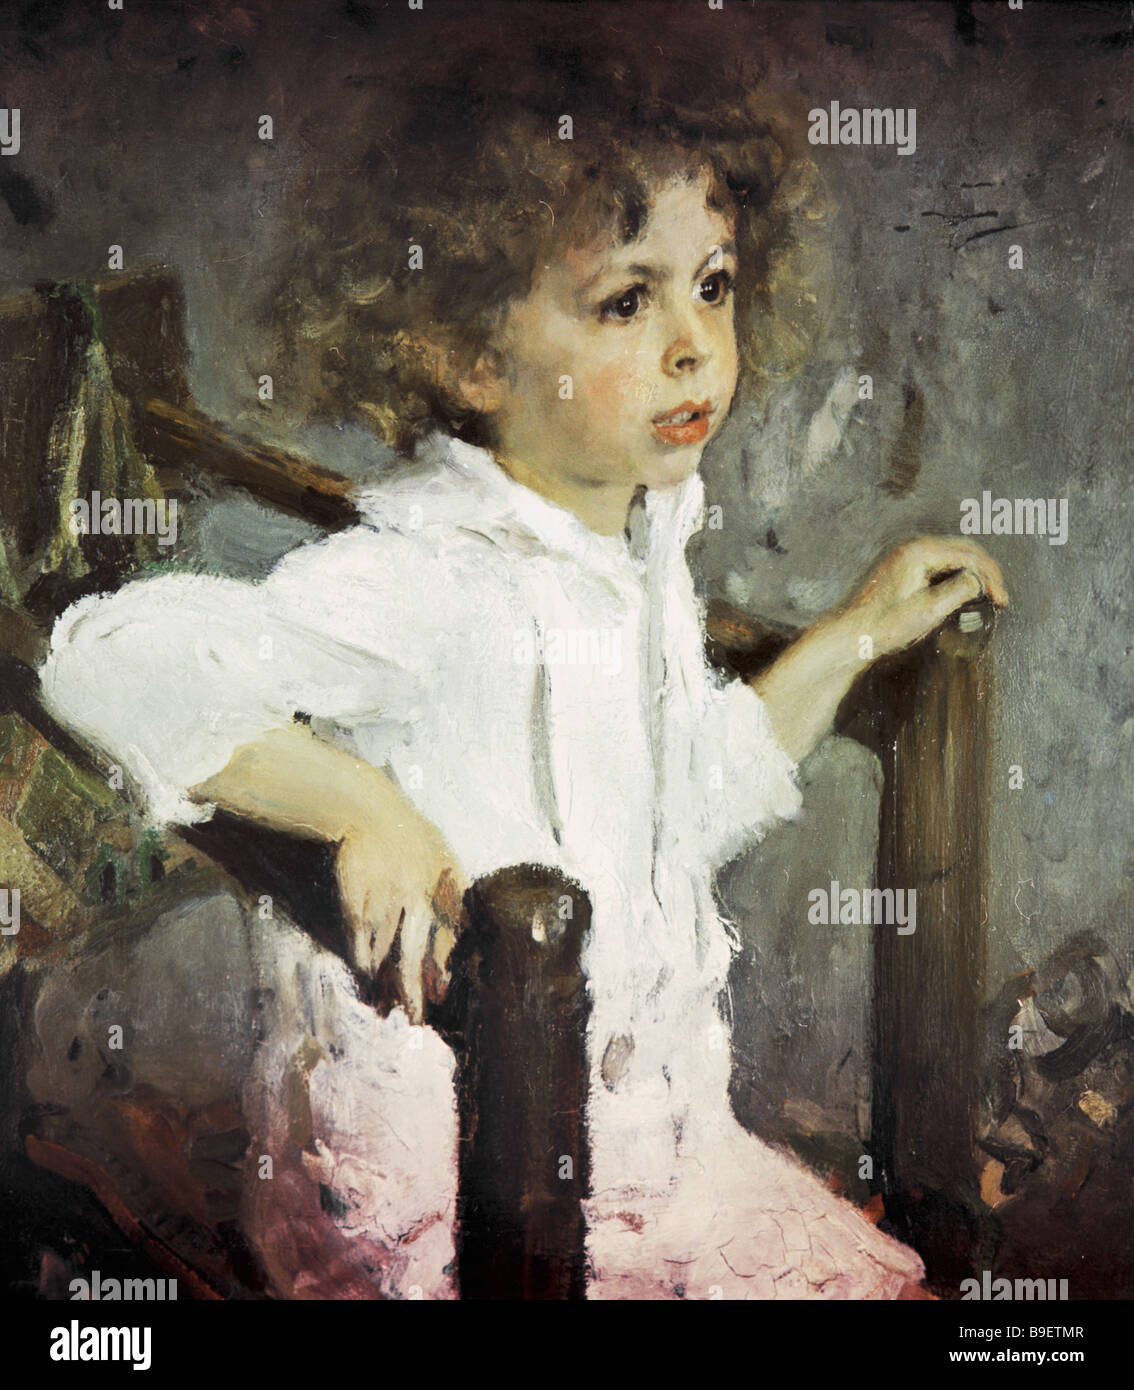 A Reproduction Of Valentin Serov S Painting Mika Morozov 1901 From The  Collection Of The State Tretyakov Gallery In Moscow